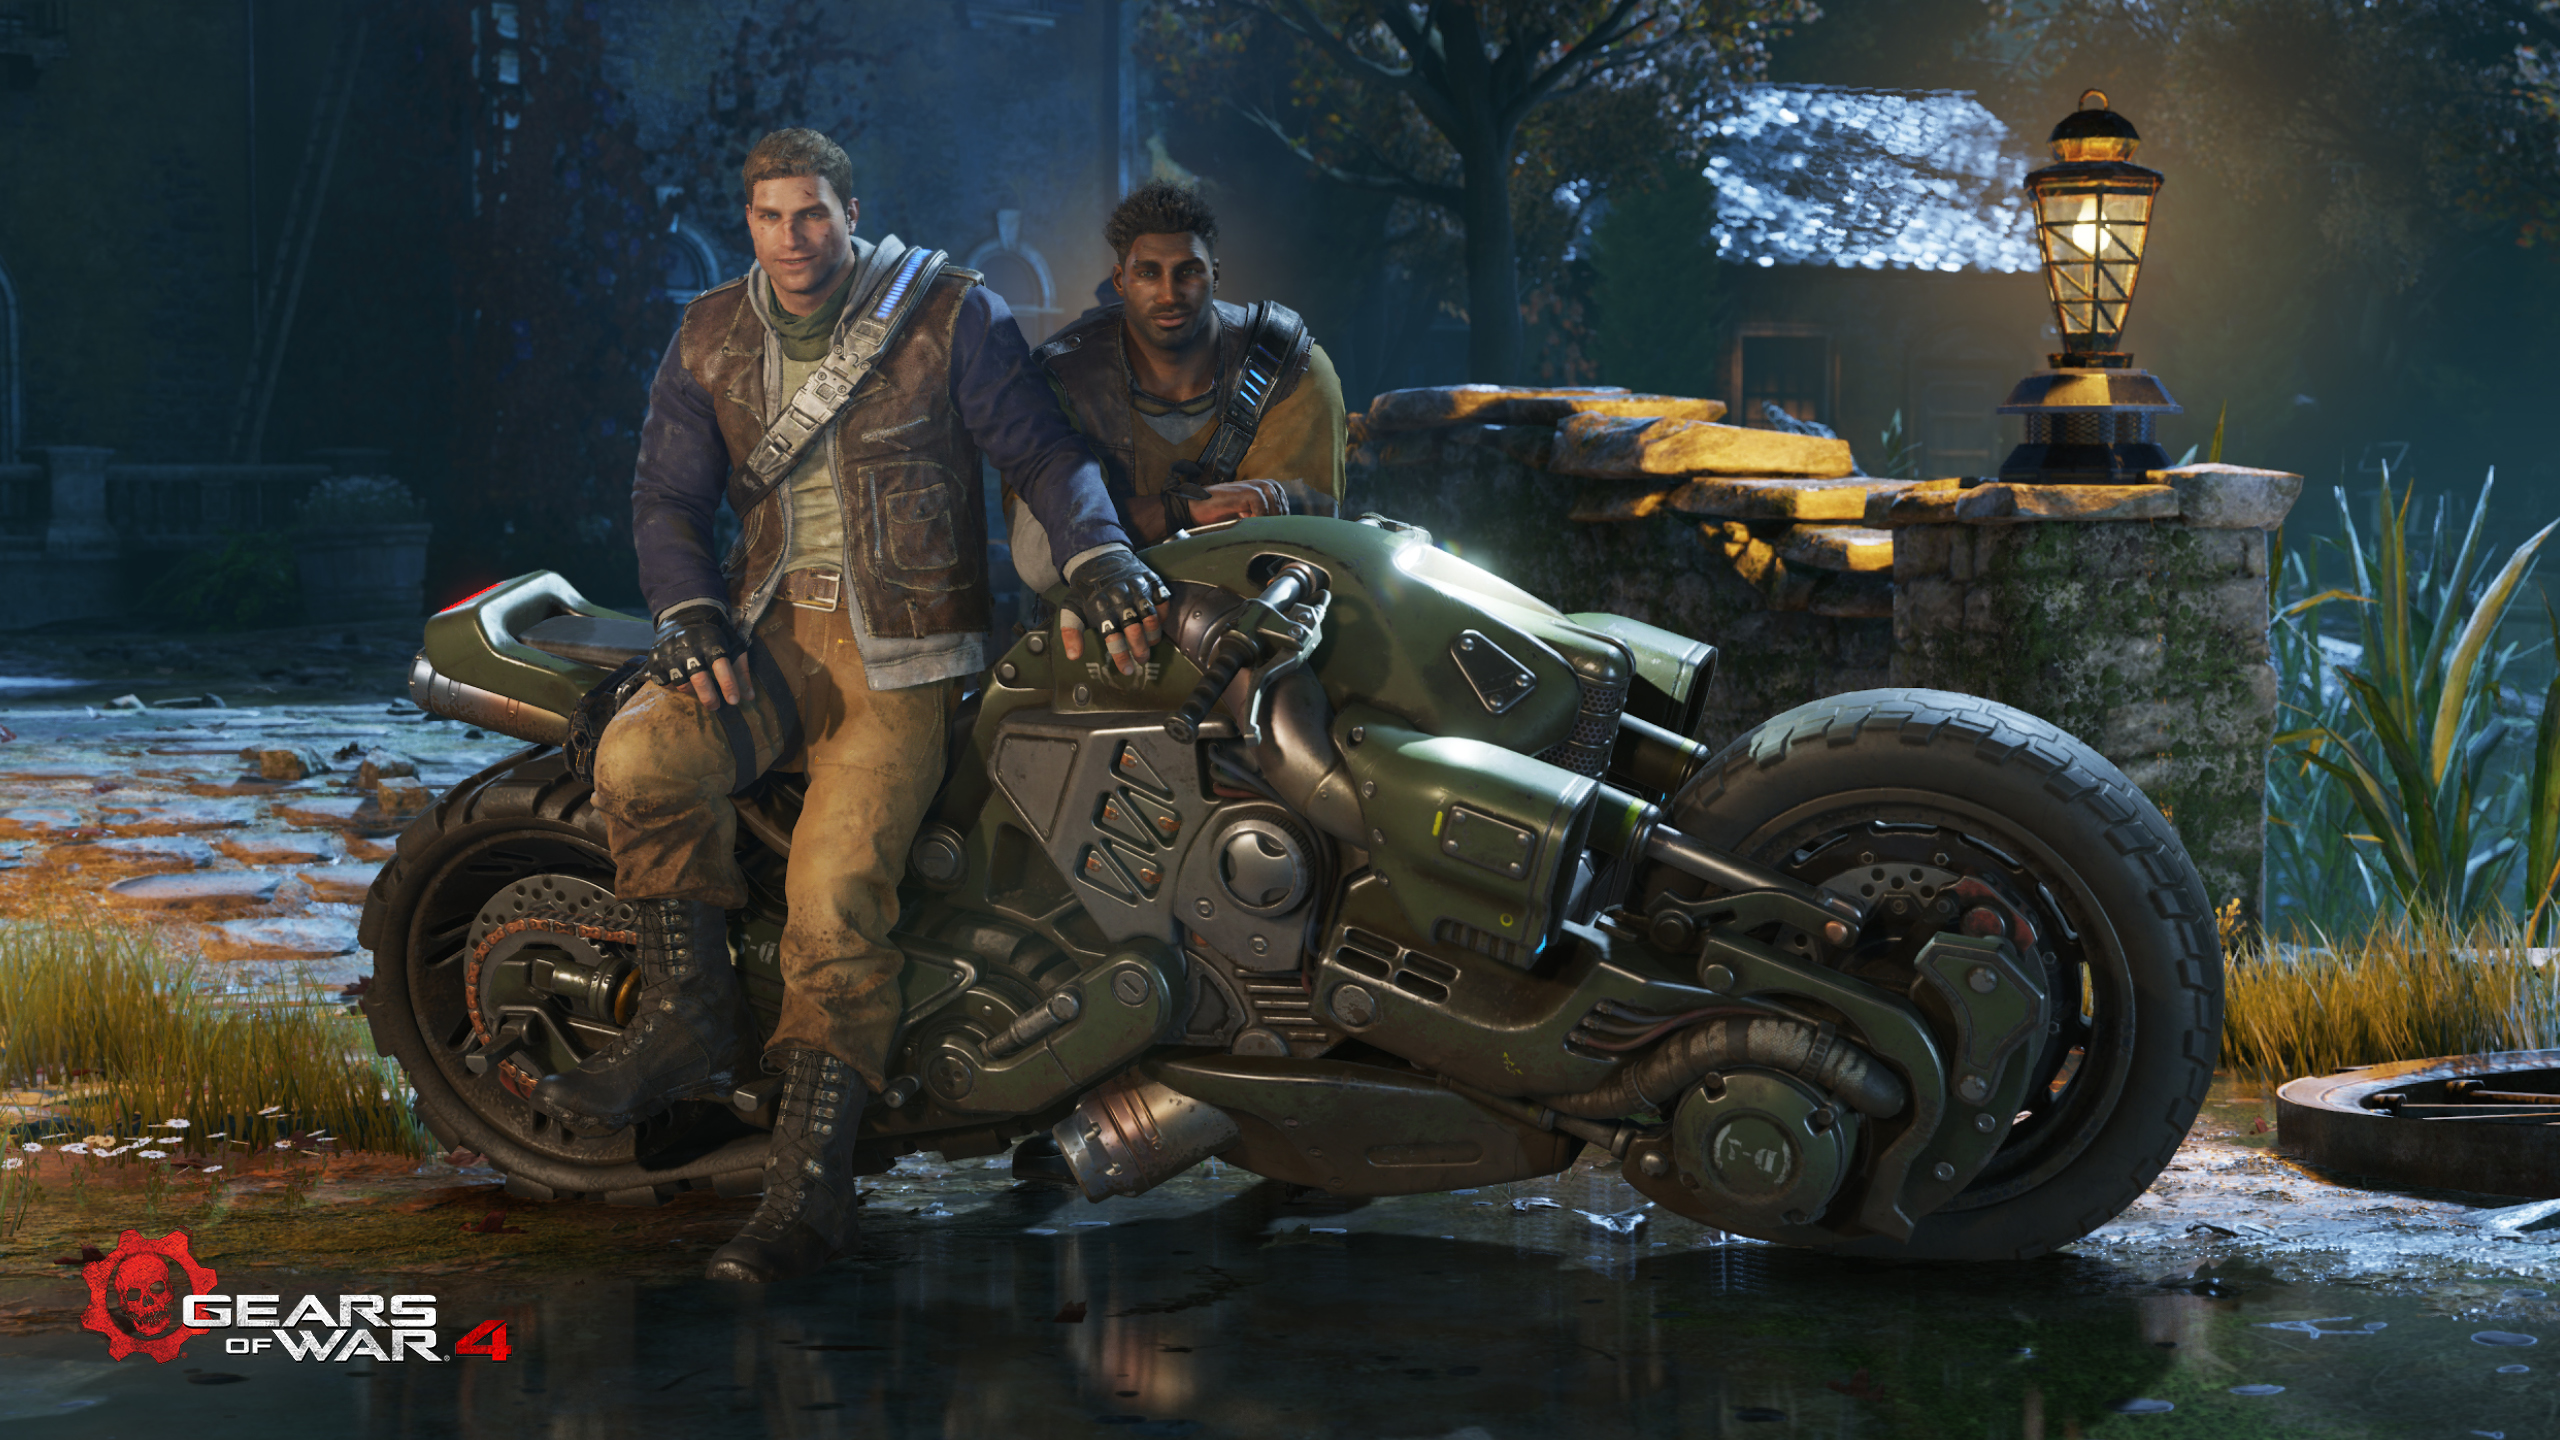 Gears Of War 4 2016 Game Hd Games 4k Wallpapers Images